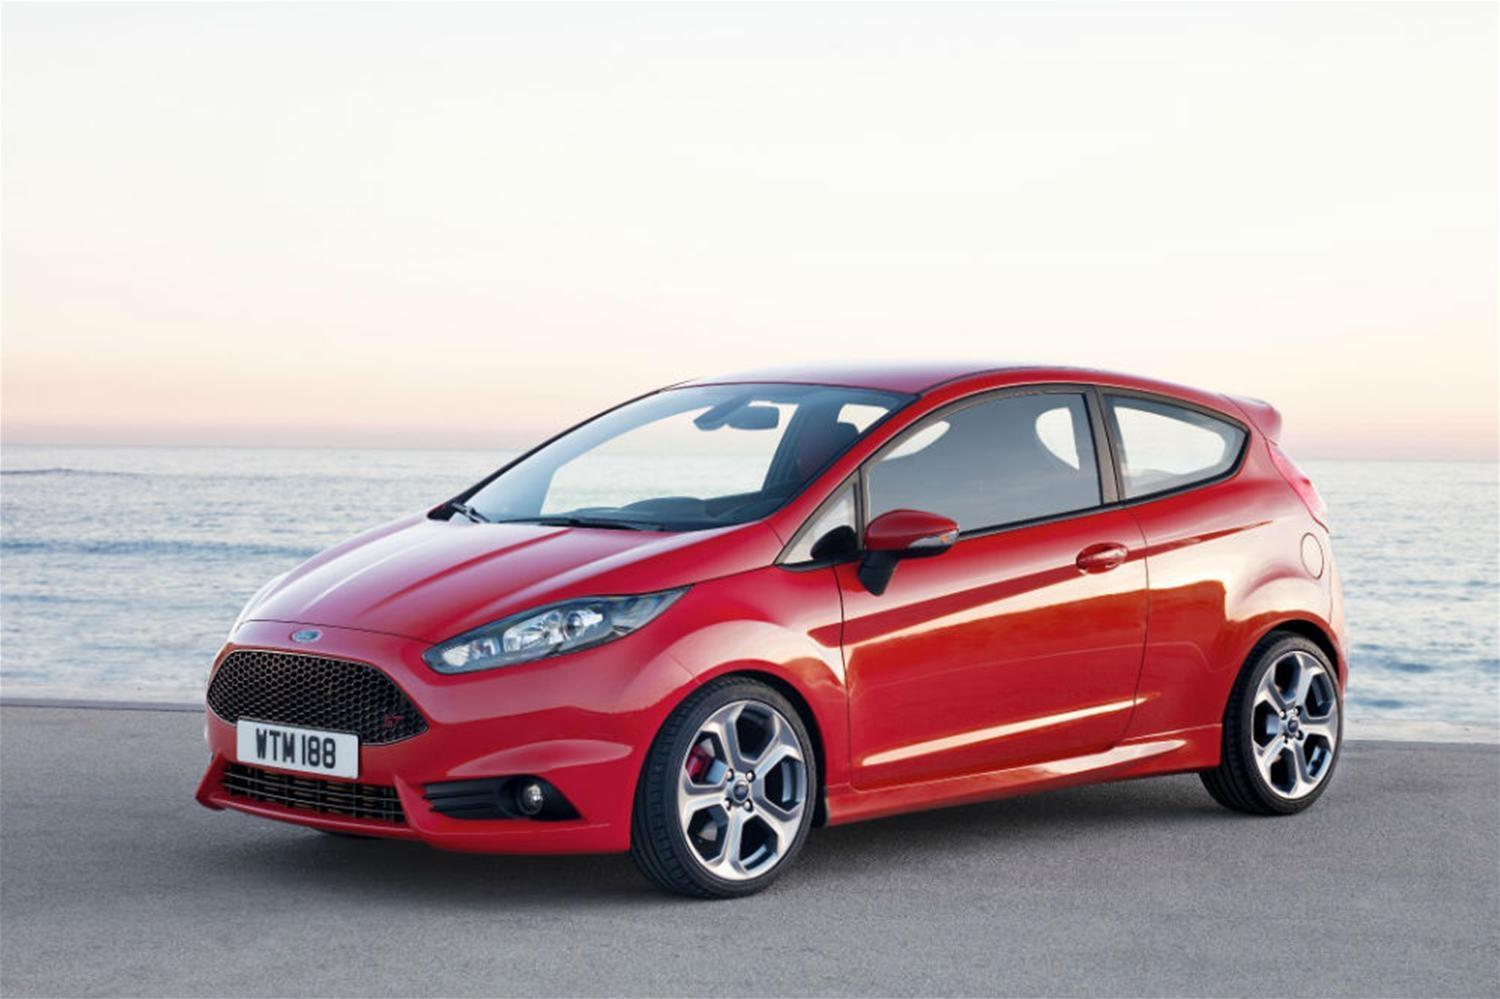 2013 Ford Fiesta ST to start from 16,995 Pounds